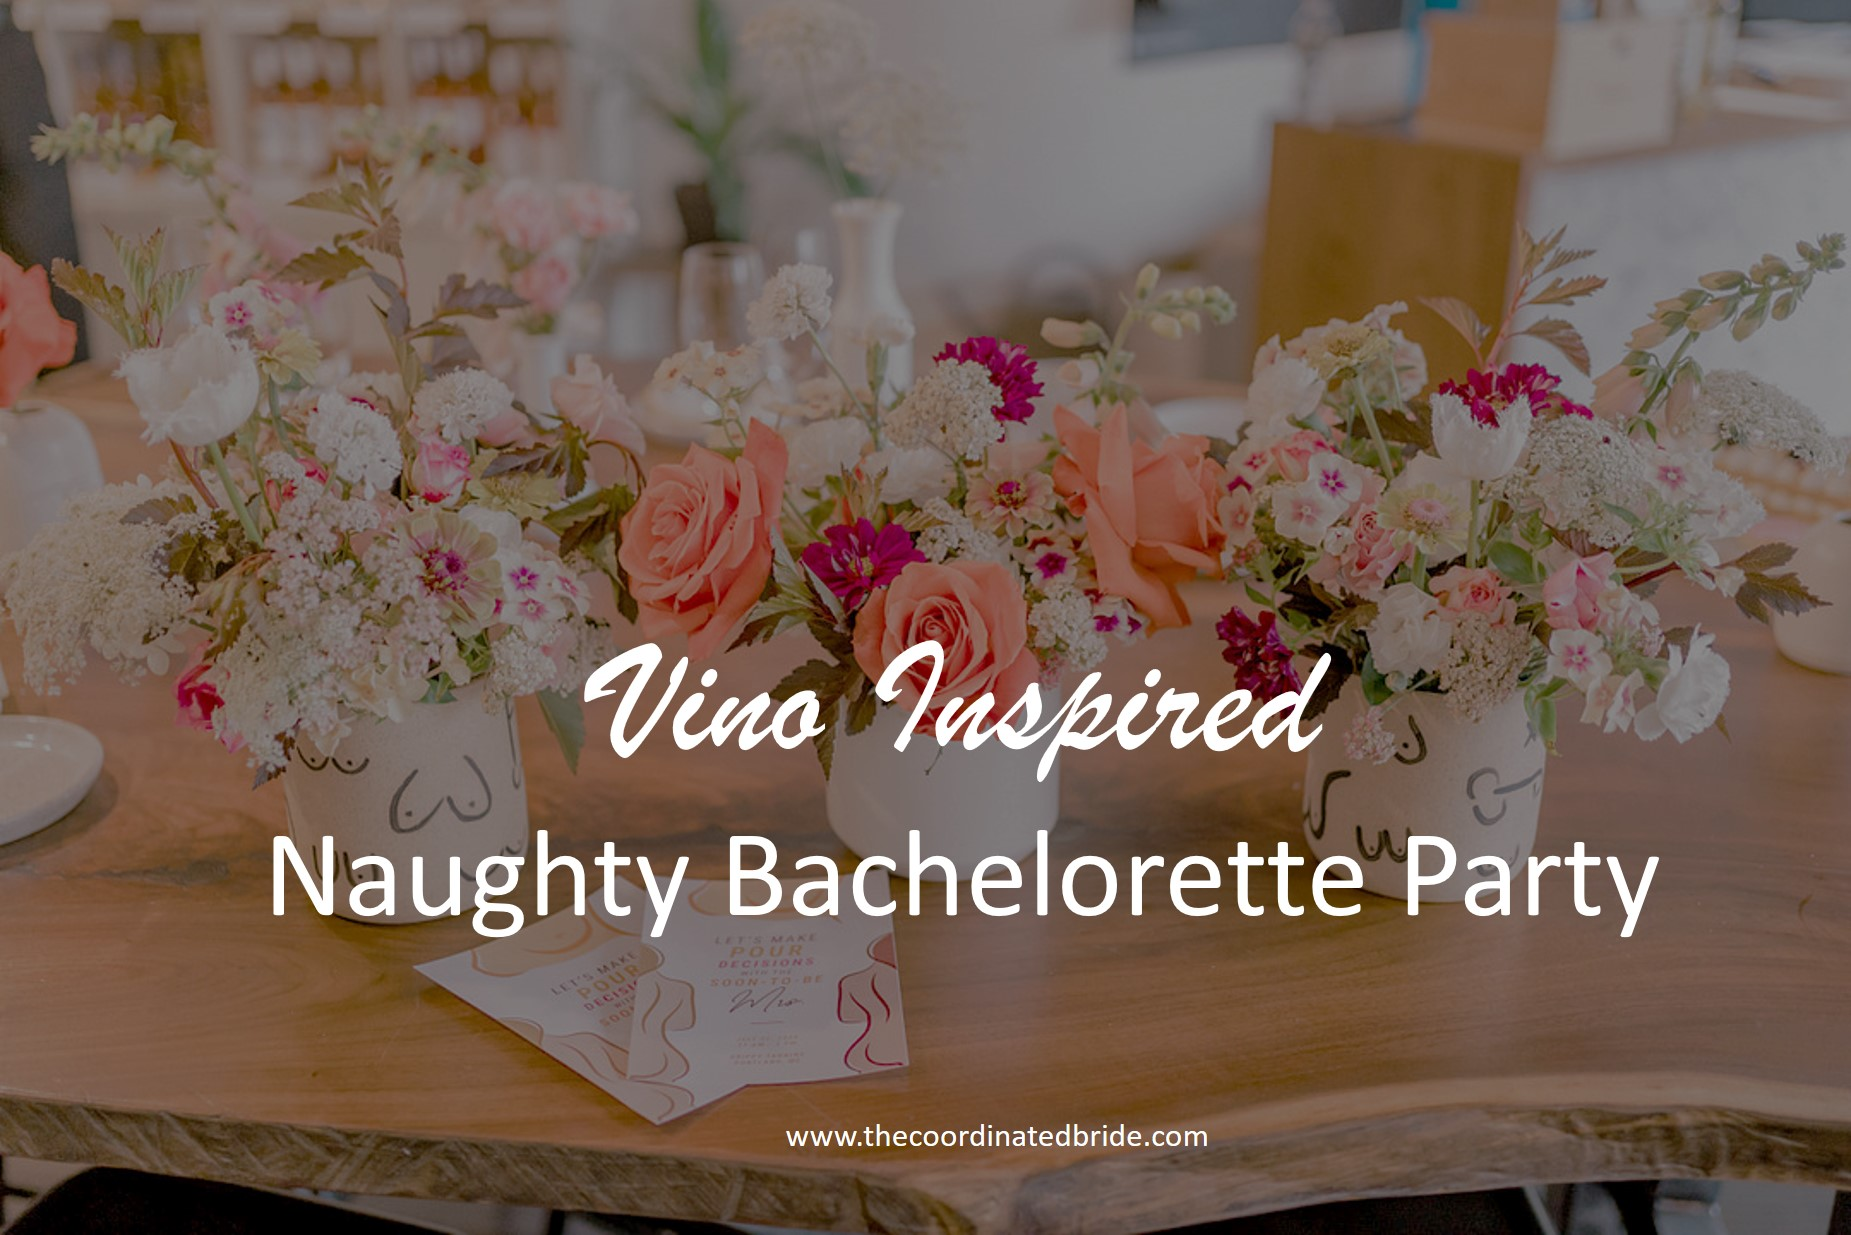 Naughty Vino Inspired Bachelorette Party in Maine